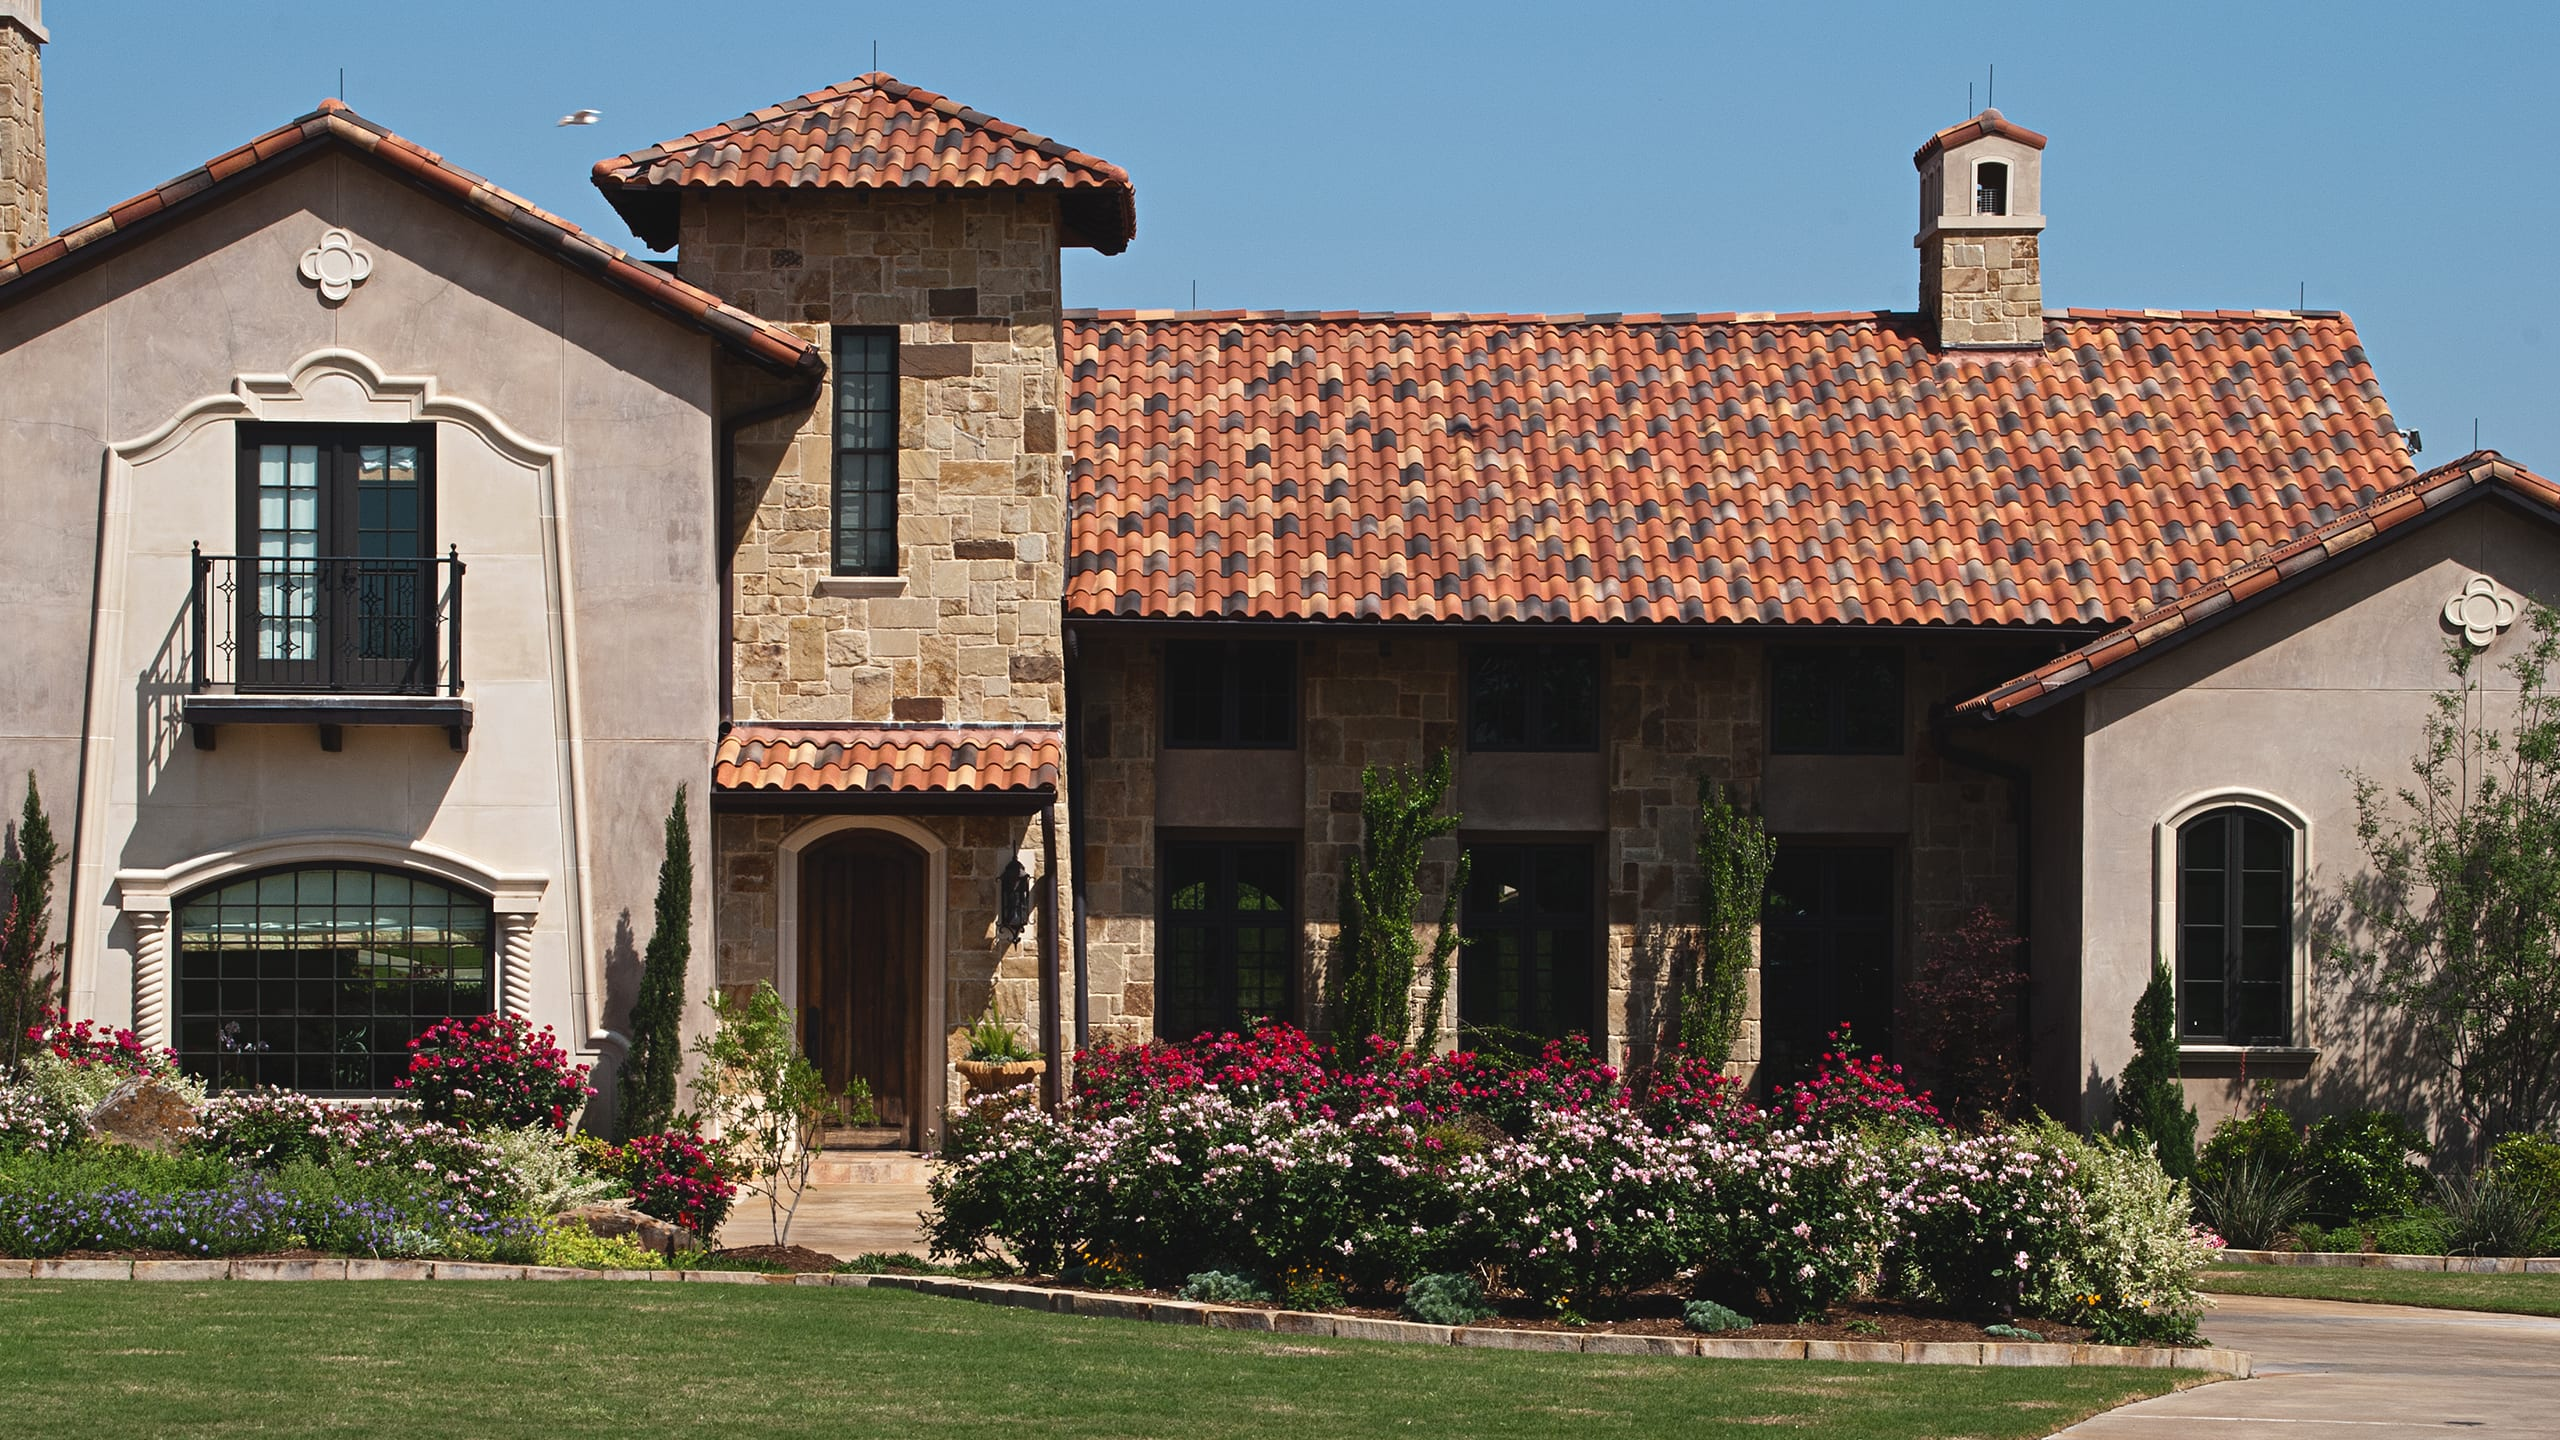 Private Residence - Ft. Worth Ludowici Roof Tile